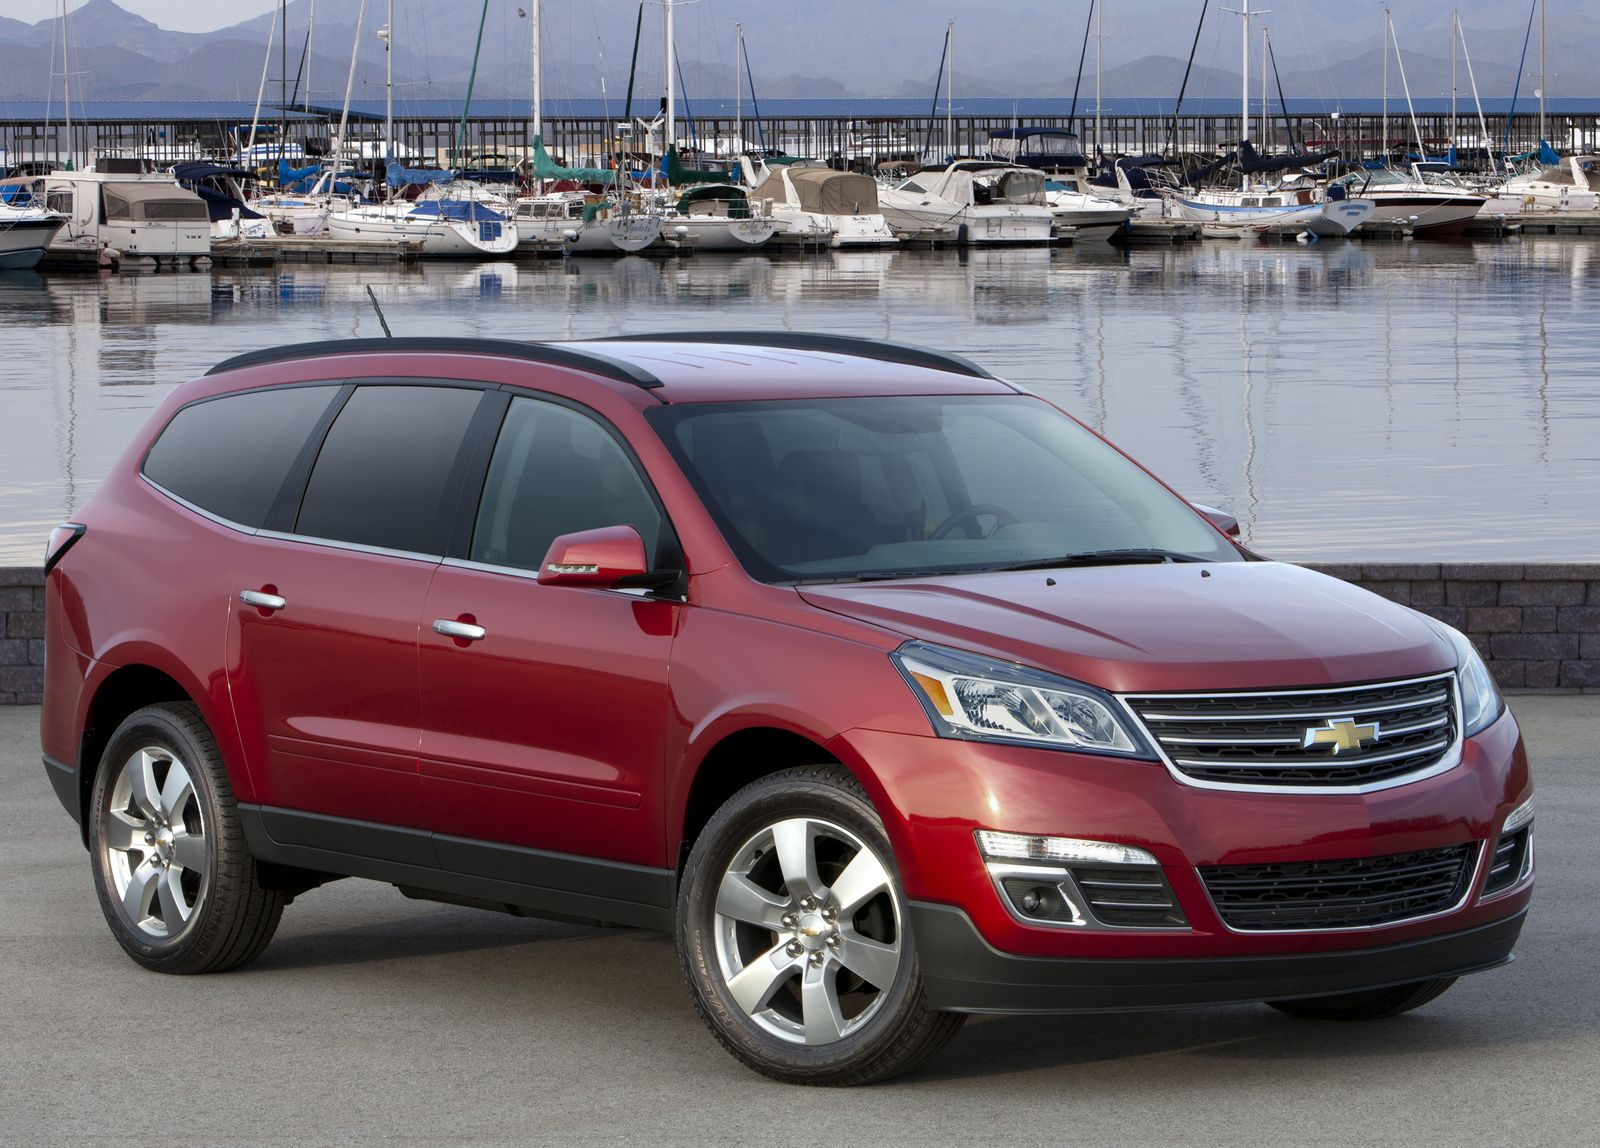 All Chevy 2014 chevrolet suv : chevy traverse | Home / Research / Chevrolet / Traverse / 2014 ...